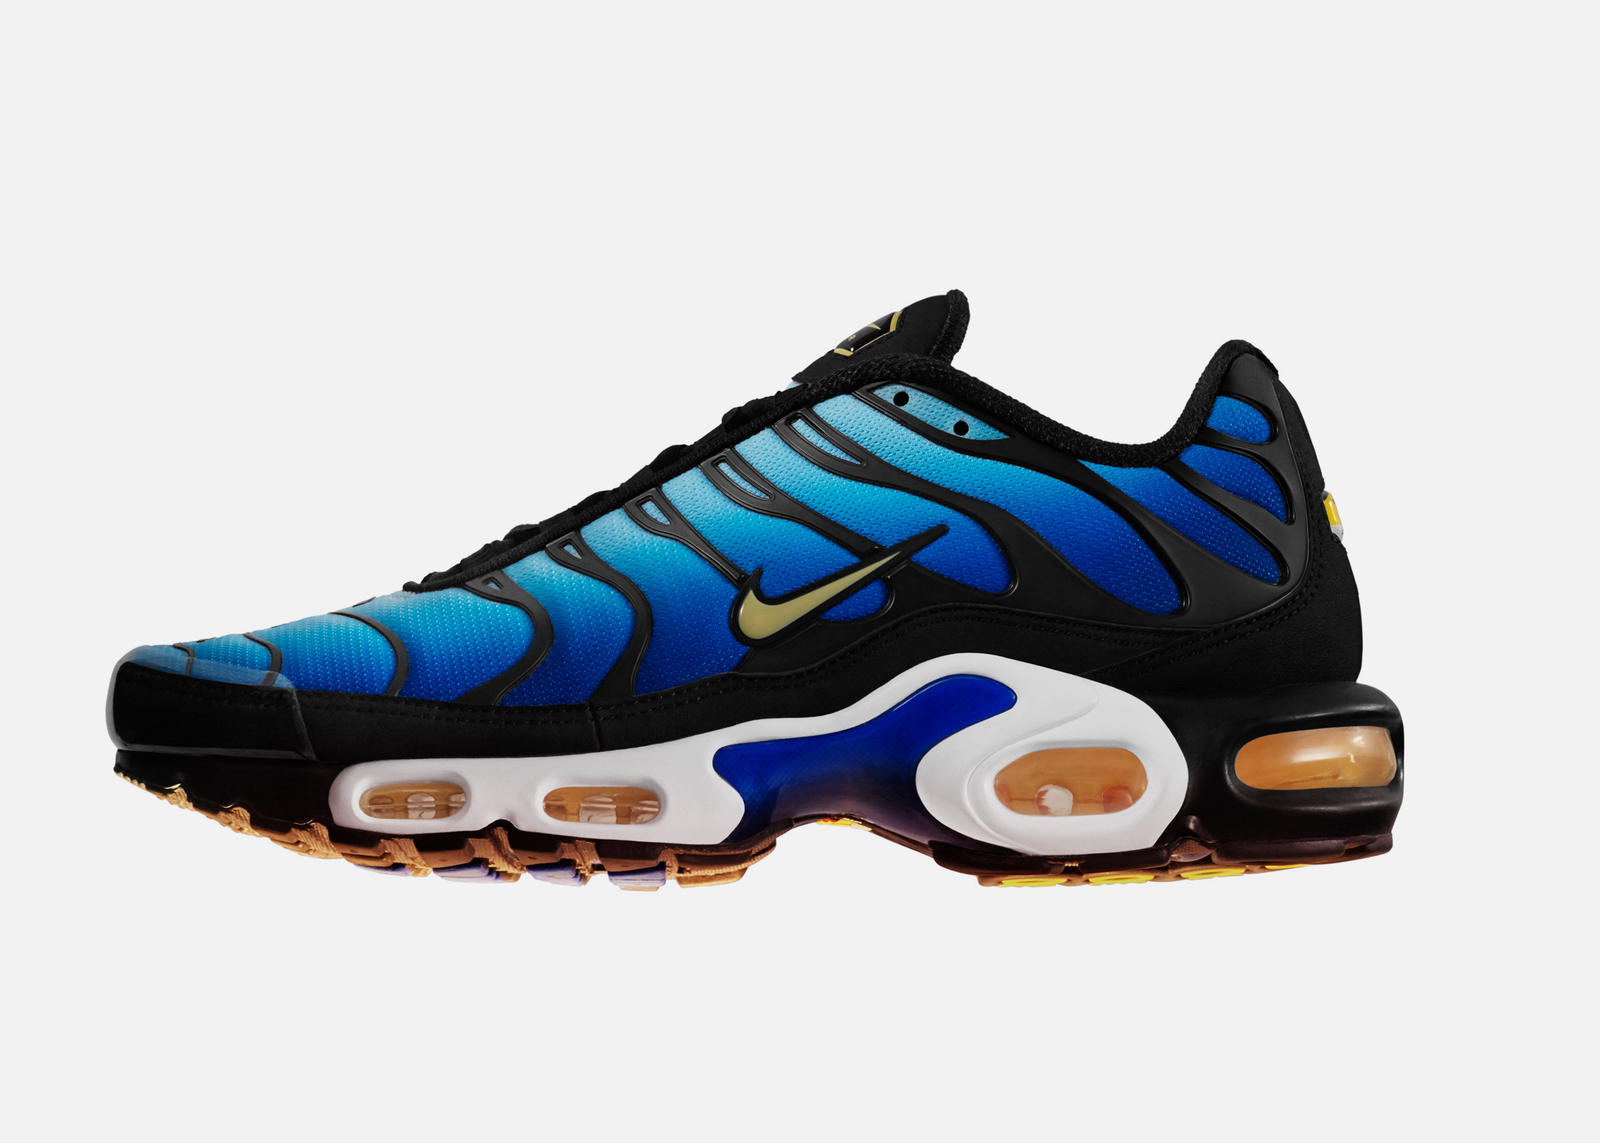 c18db239ccb8 The Untold Story of the Nike Air Max Plus 20